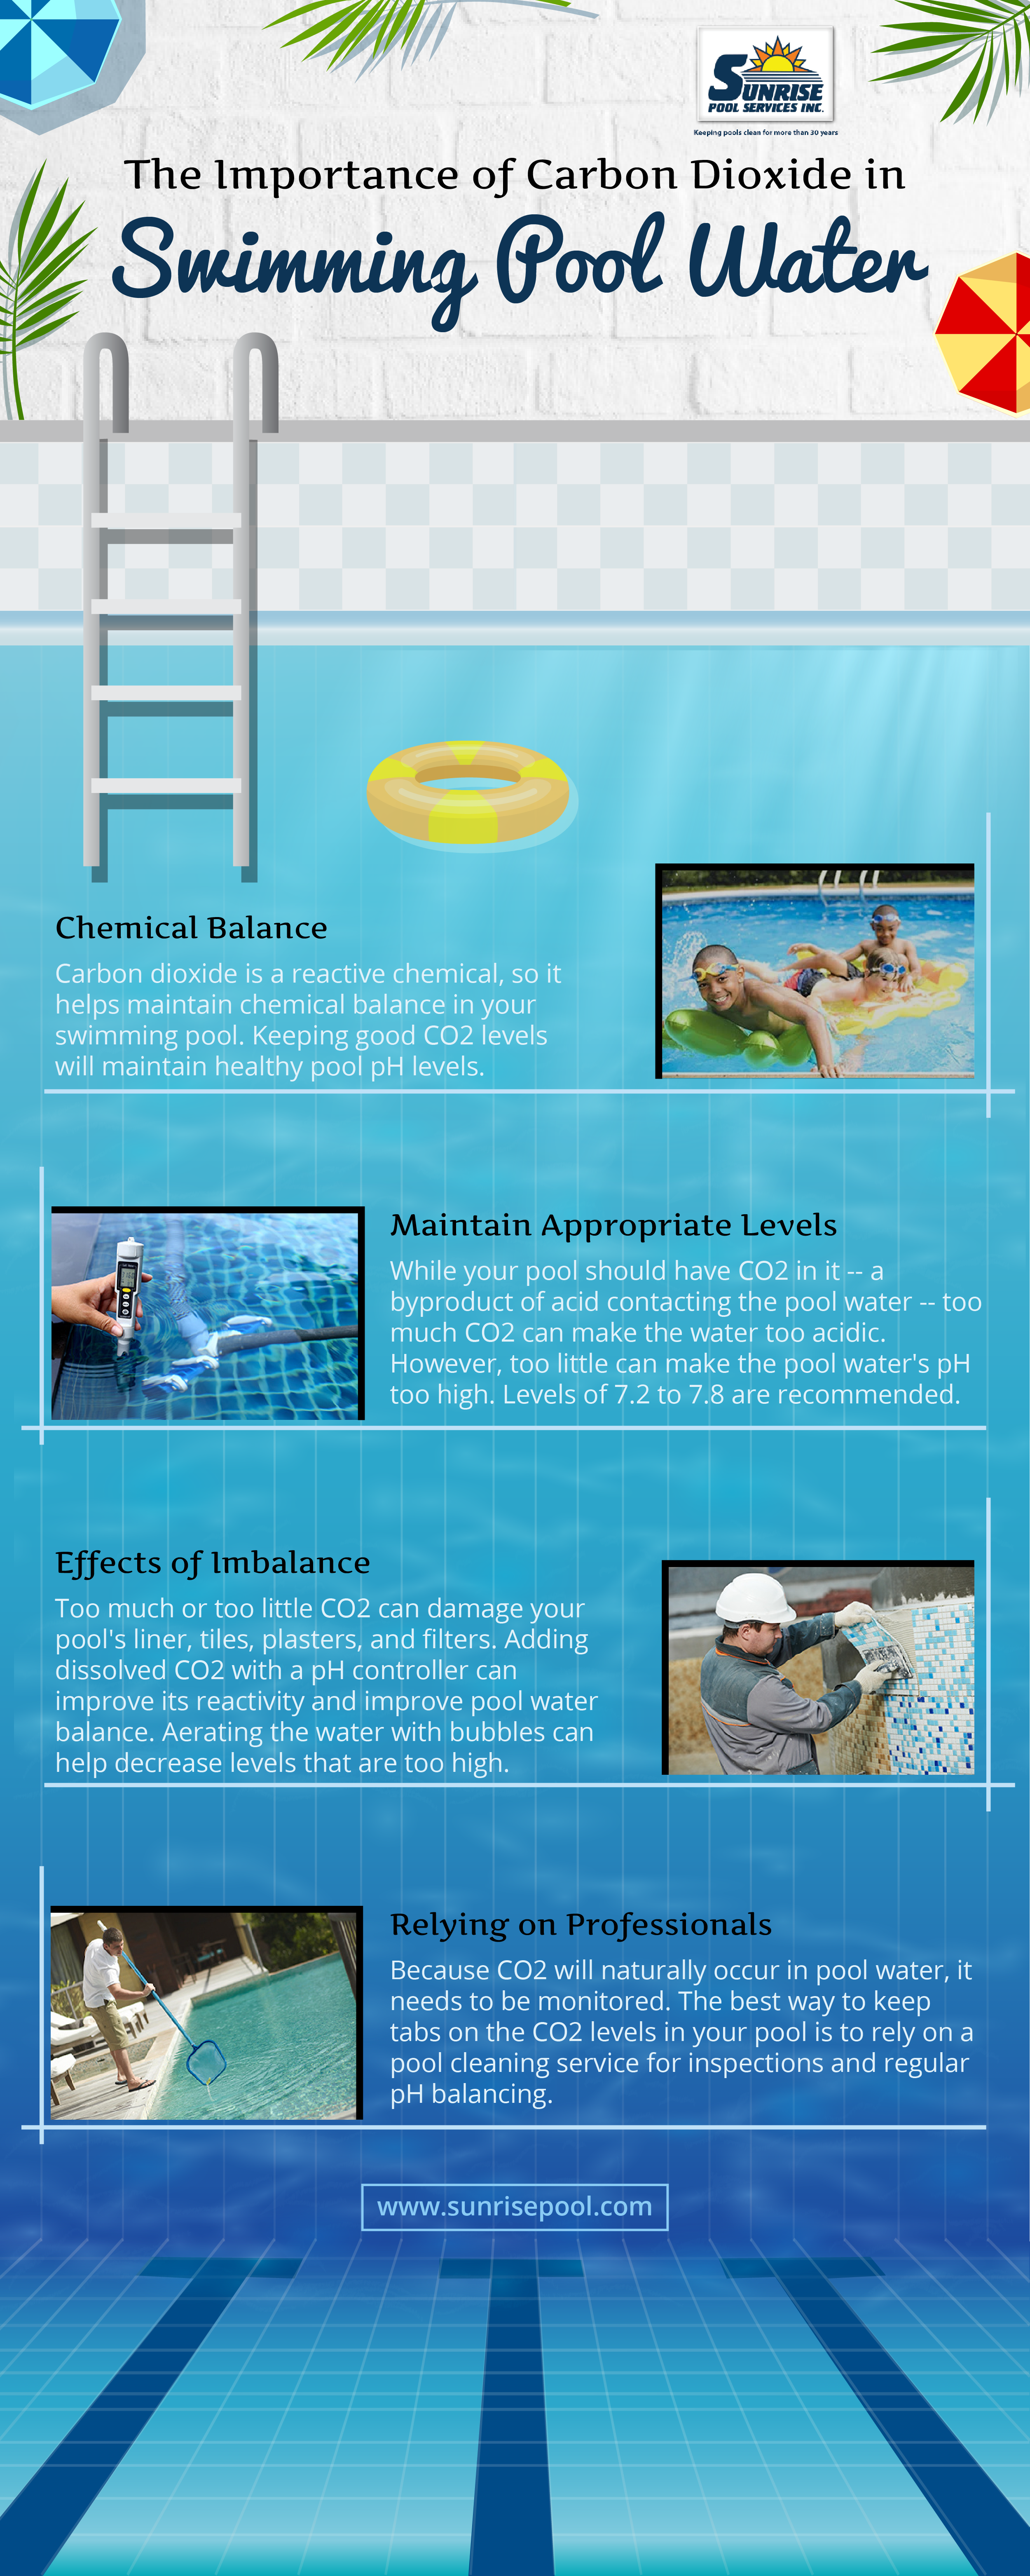 The Importance of Carbon Dioxide in Swimming Pool Water